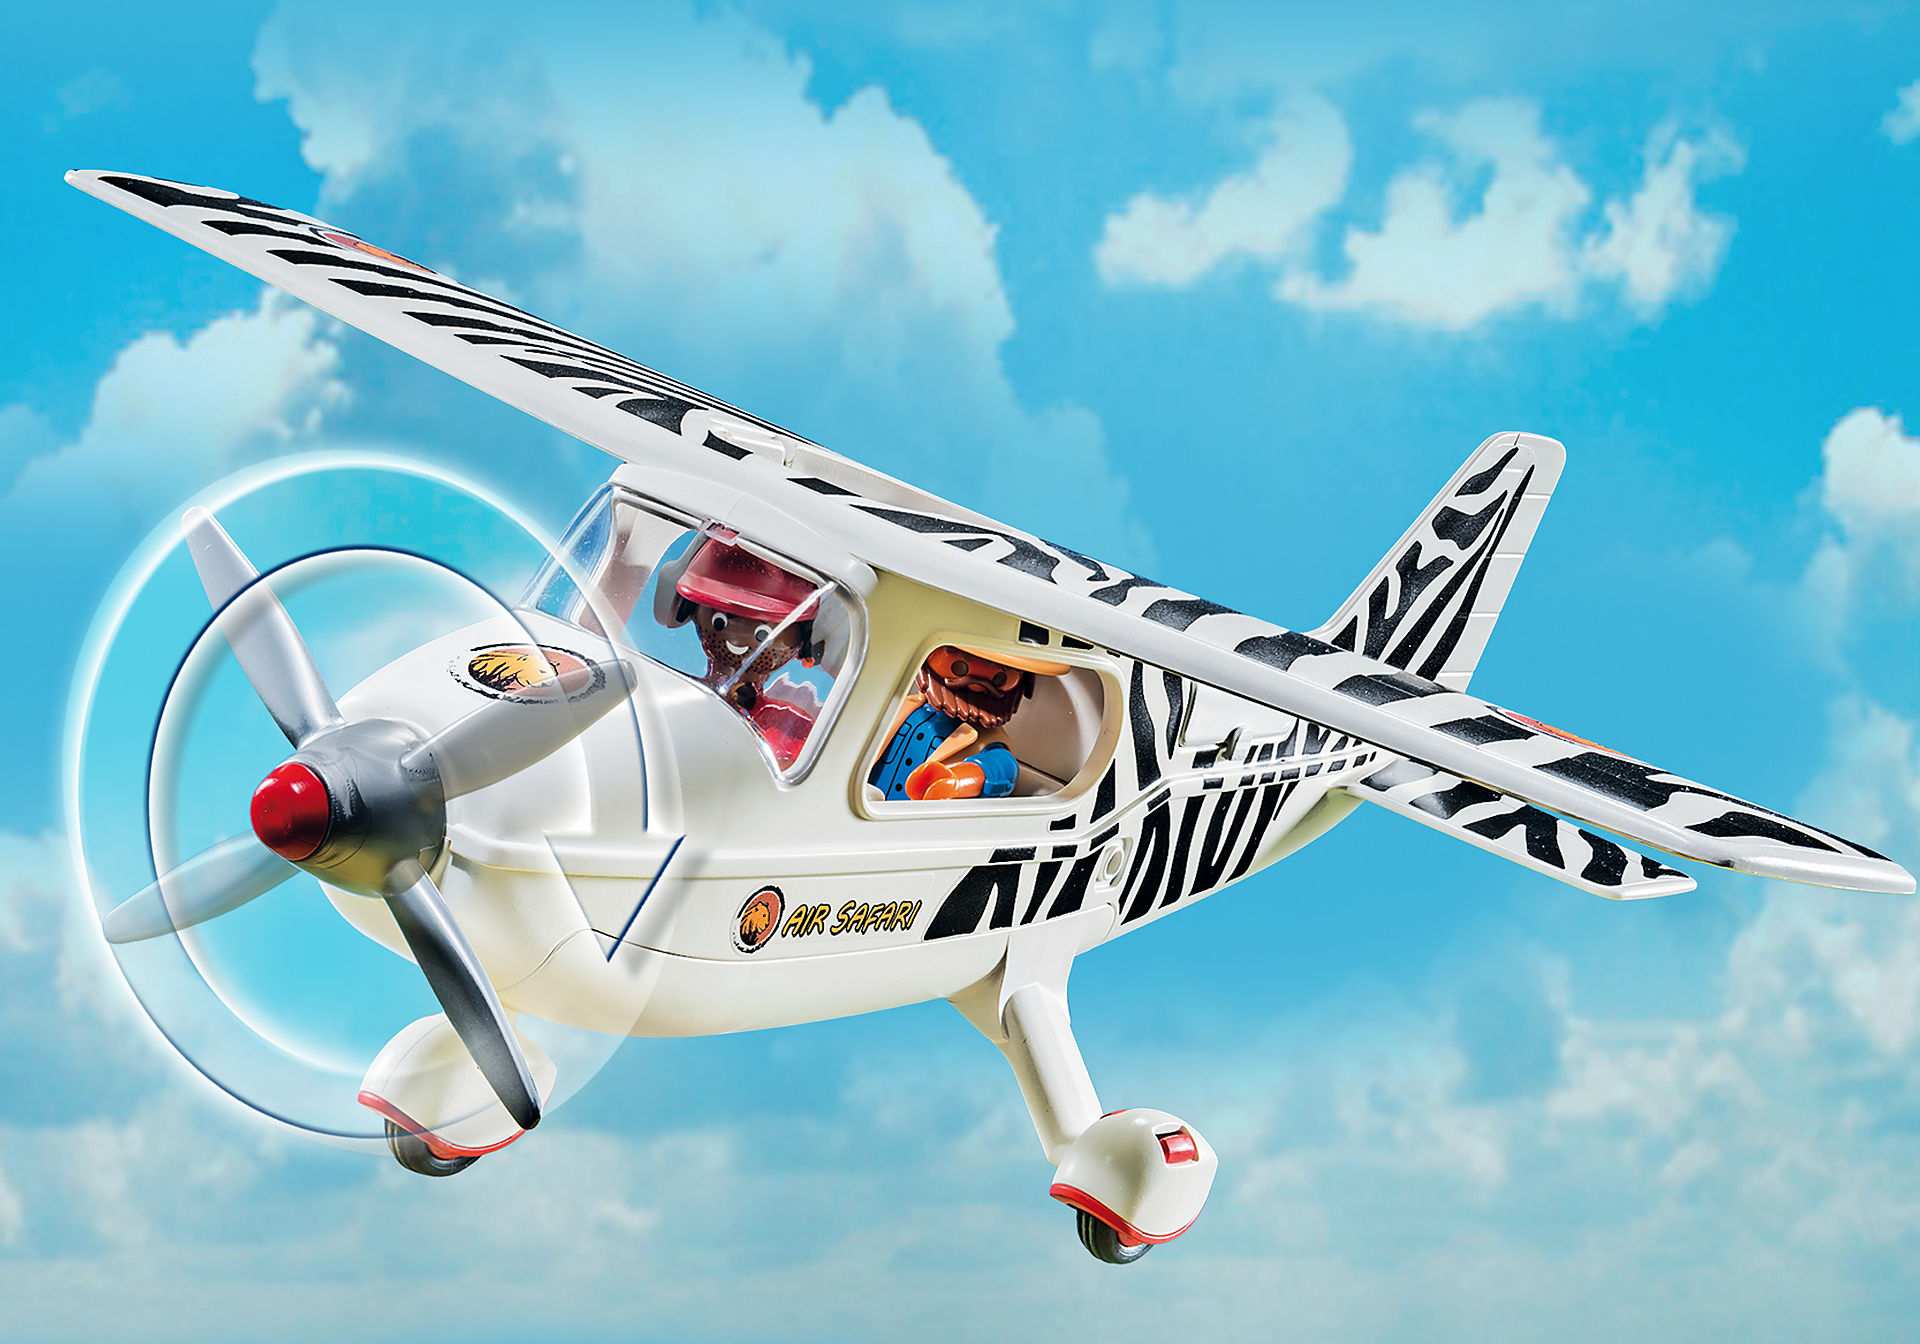 http://media.playmobil.com/i/playmobil/6938_product_extra2/Avion avec explorateurs